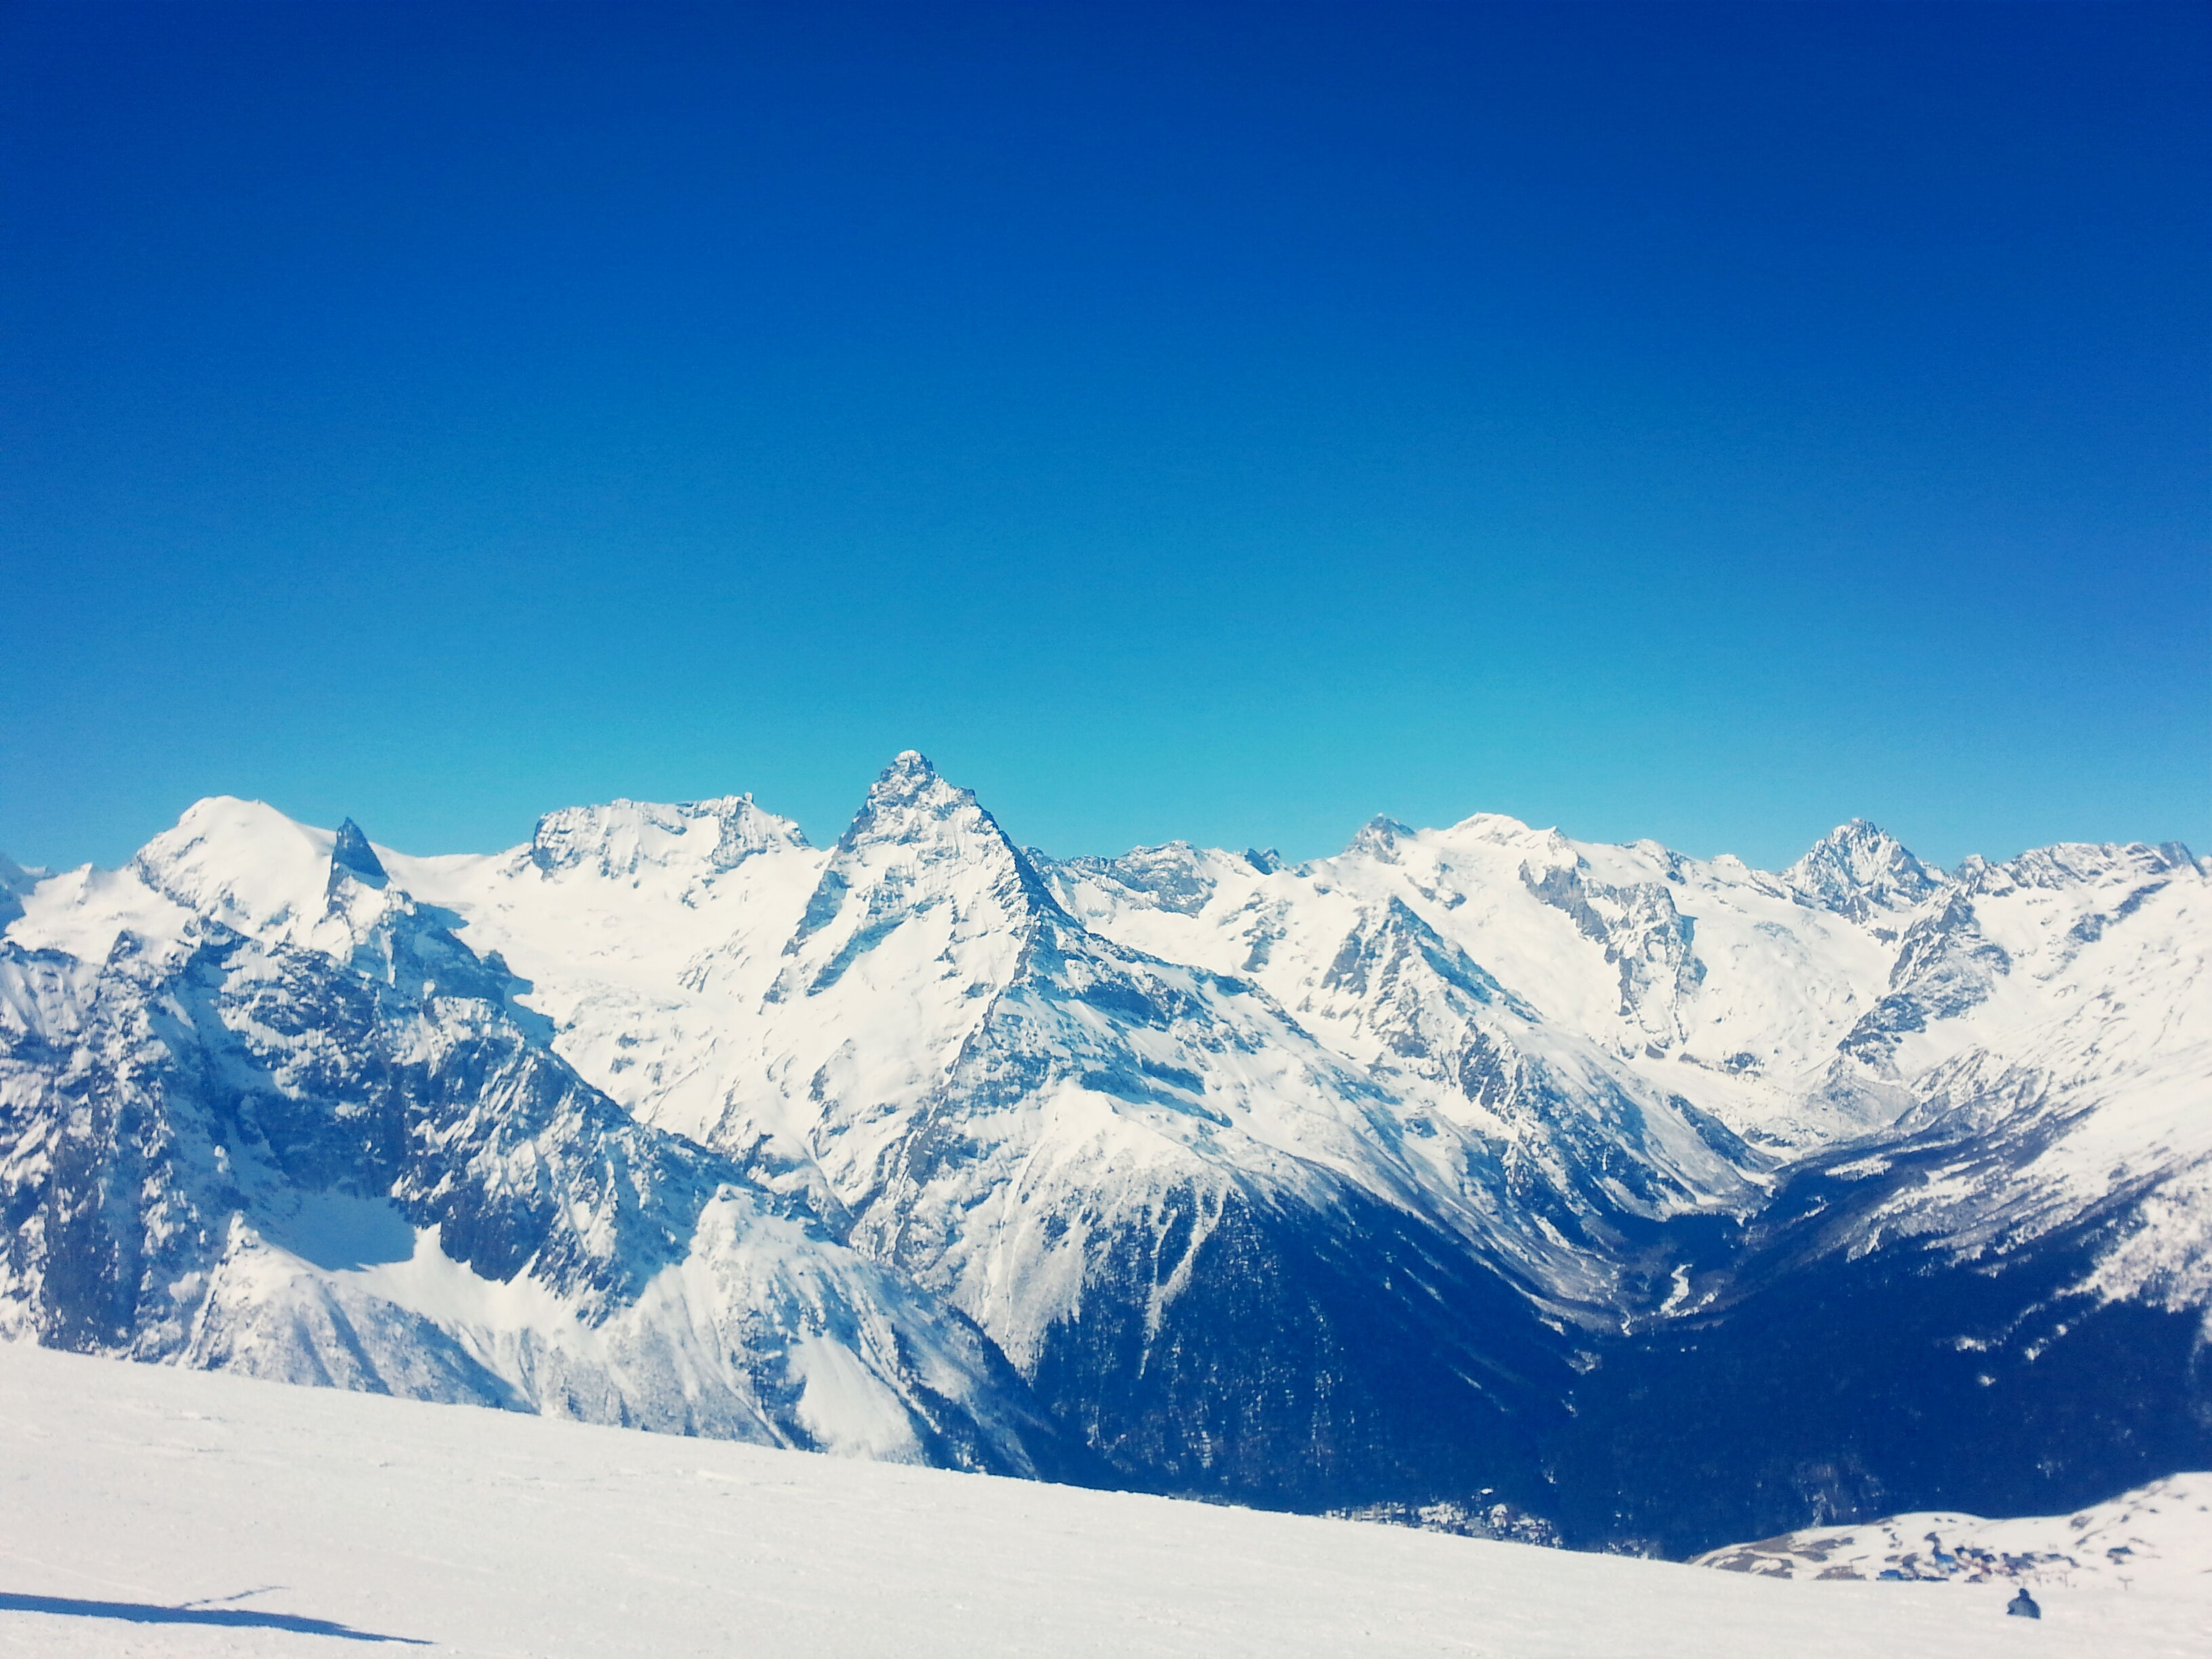 snow, winter, cold temperature, season, mountain, snowcapped mountain, clear sky, weather, tranquil scene, tranquility, scenics, blue, beauty in nature, covering, mountain range, landscape, copy space, nature, white color, frozen